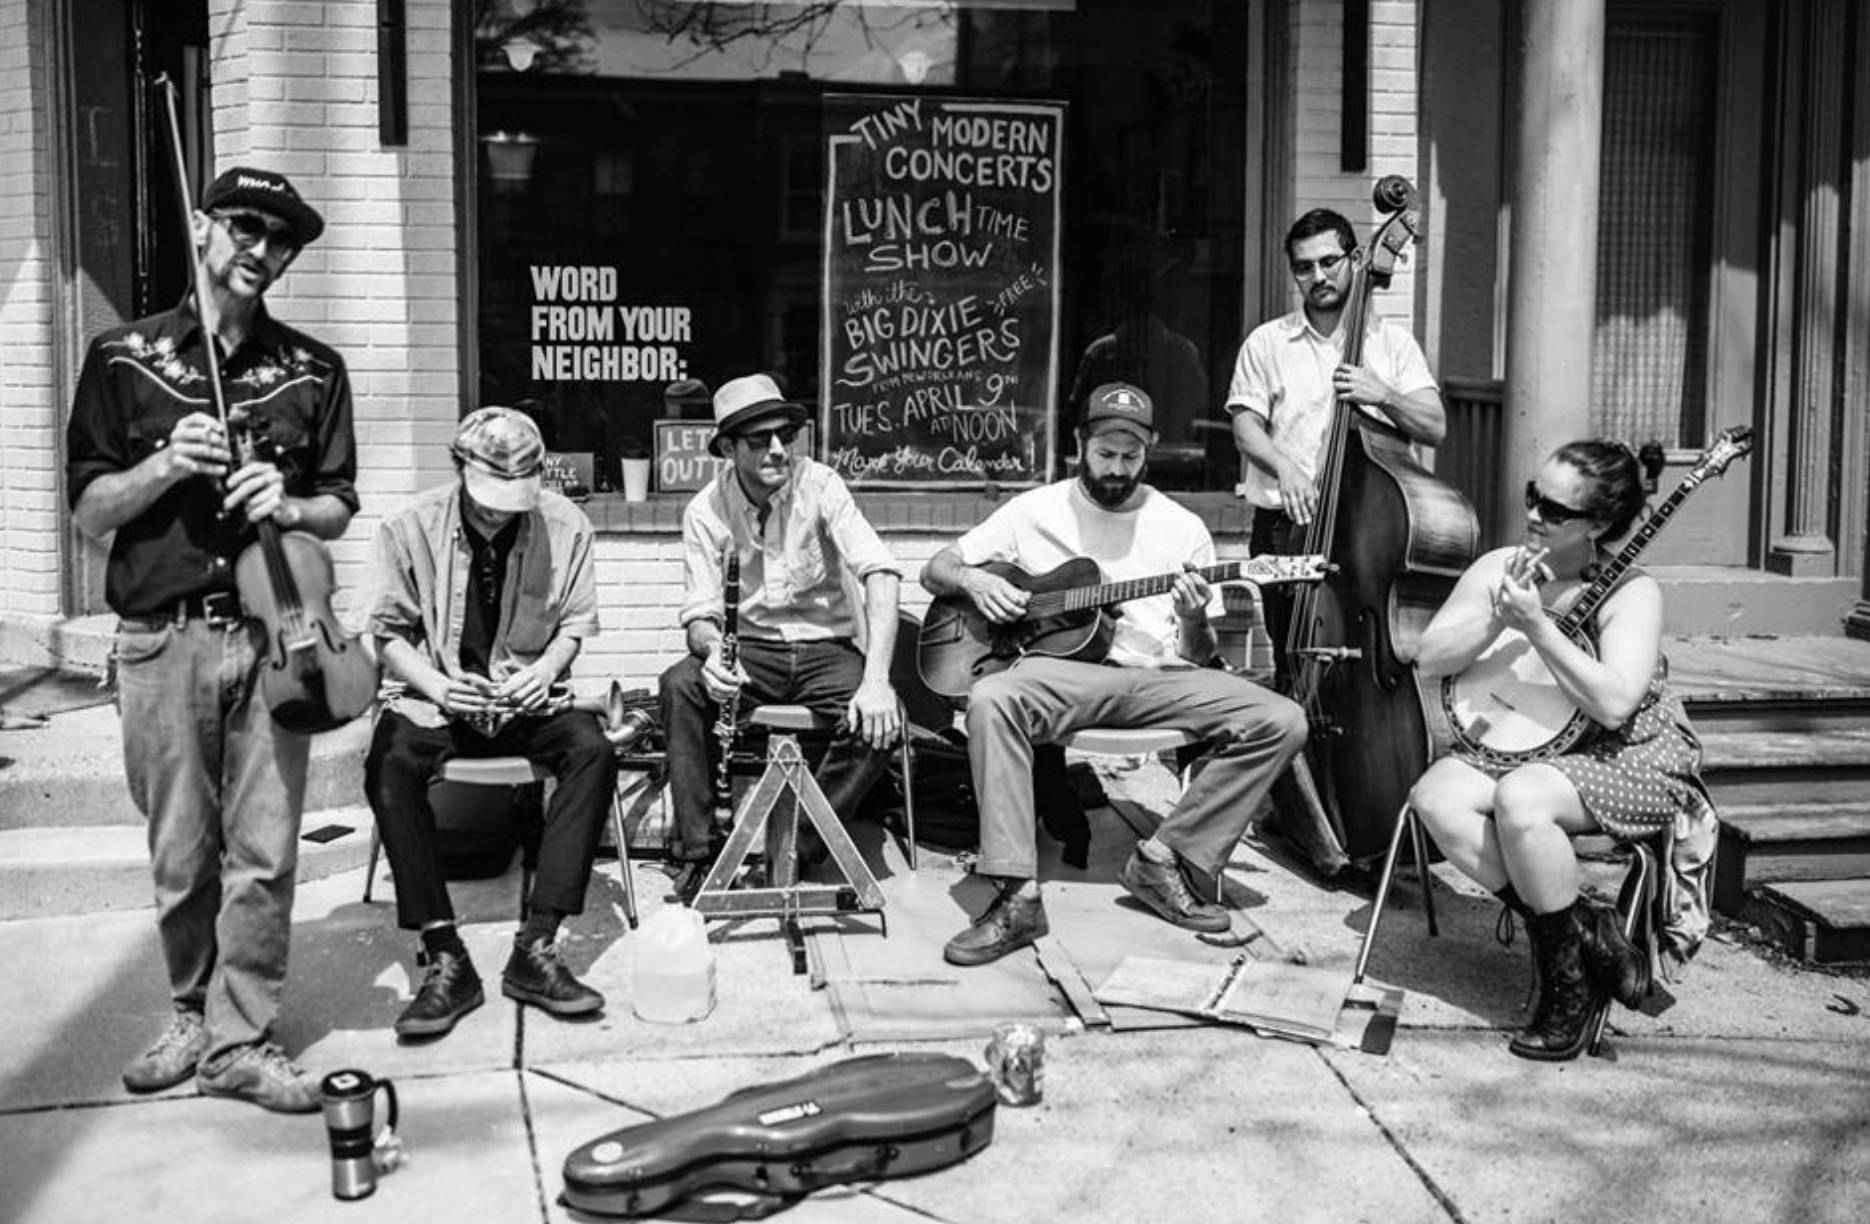 The Big Dixie Swingers w/ Red Mountain Jug Band